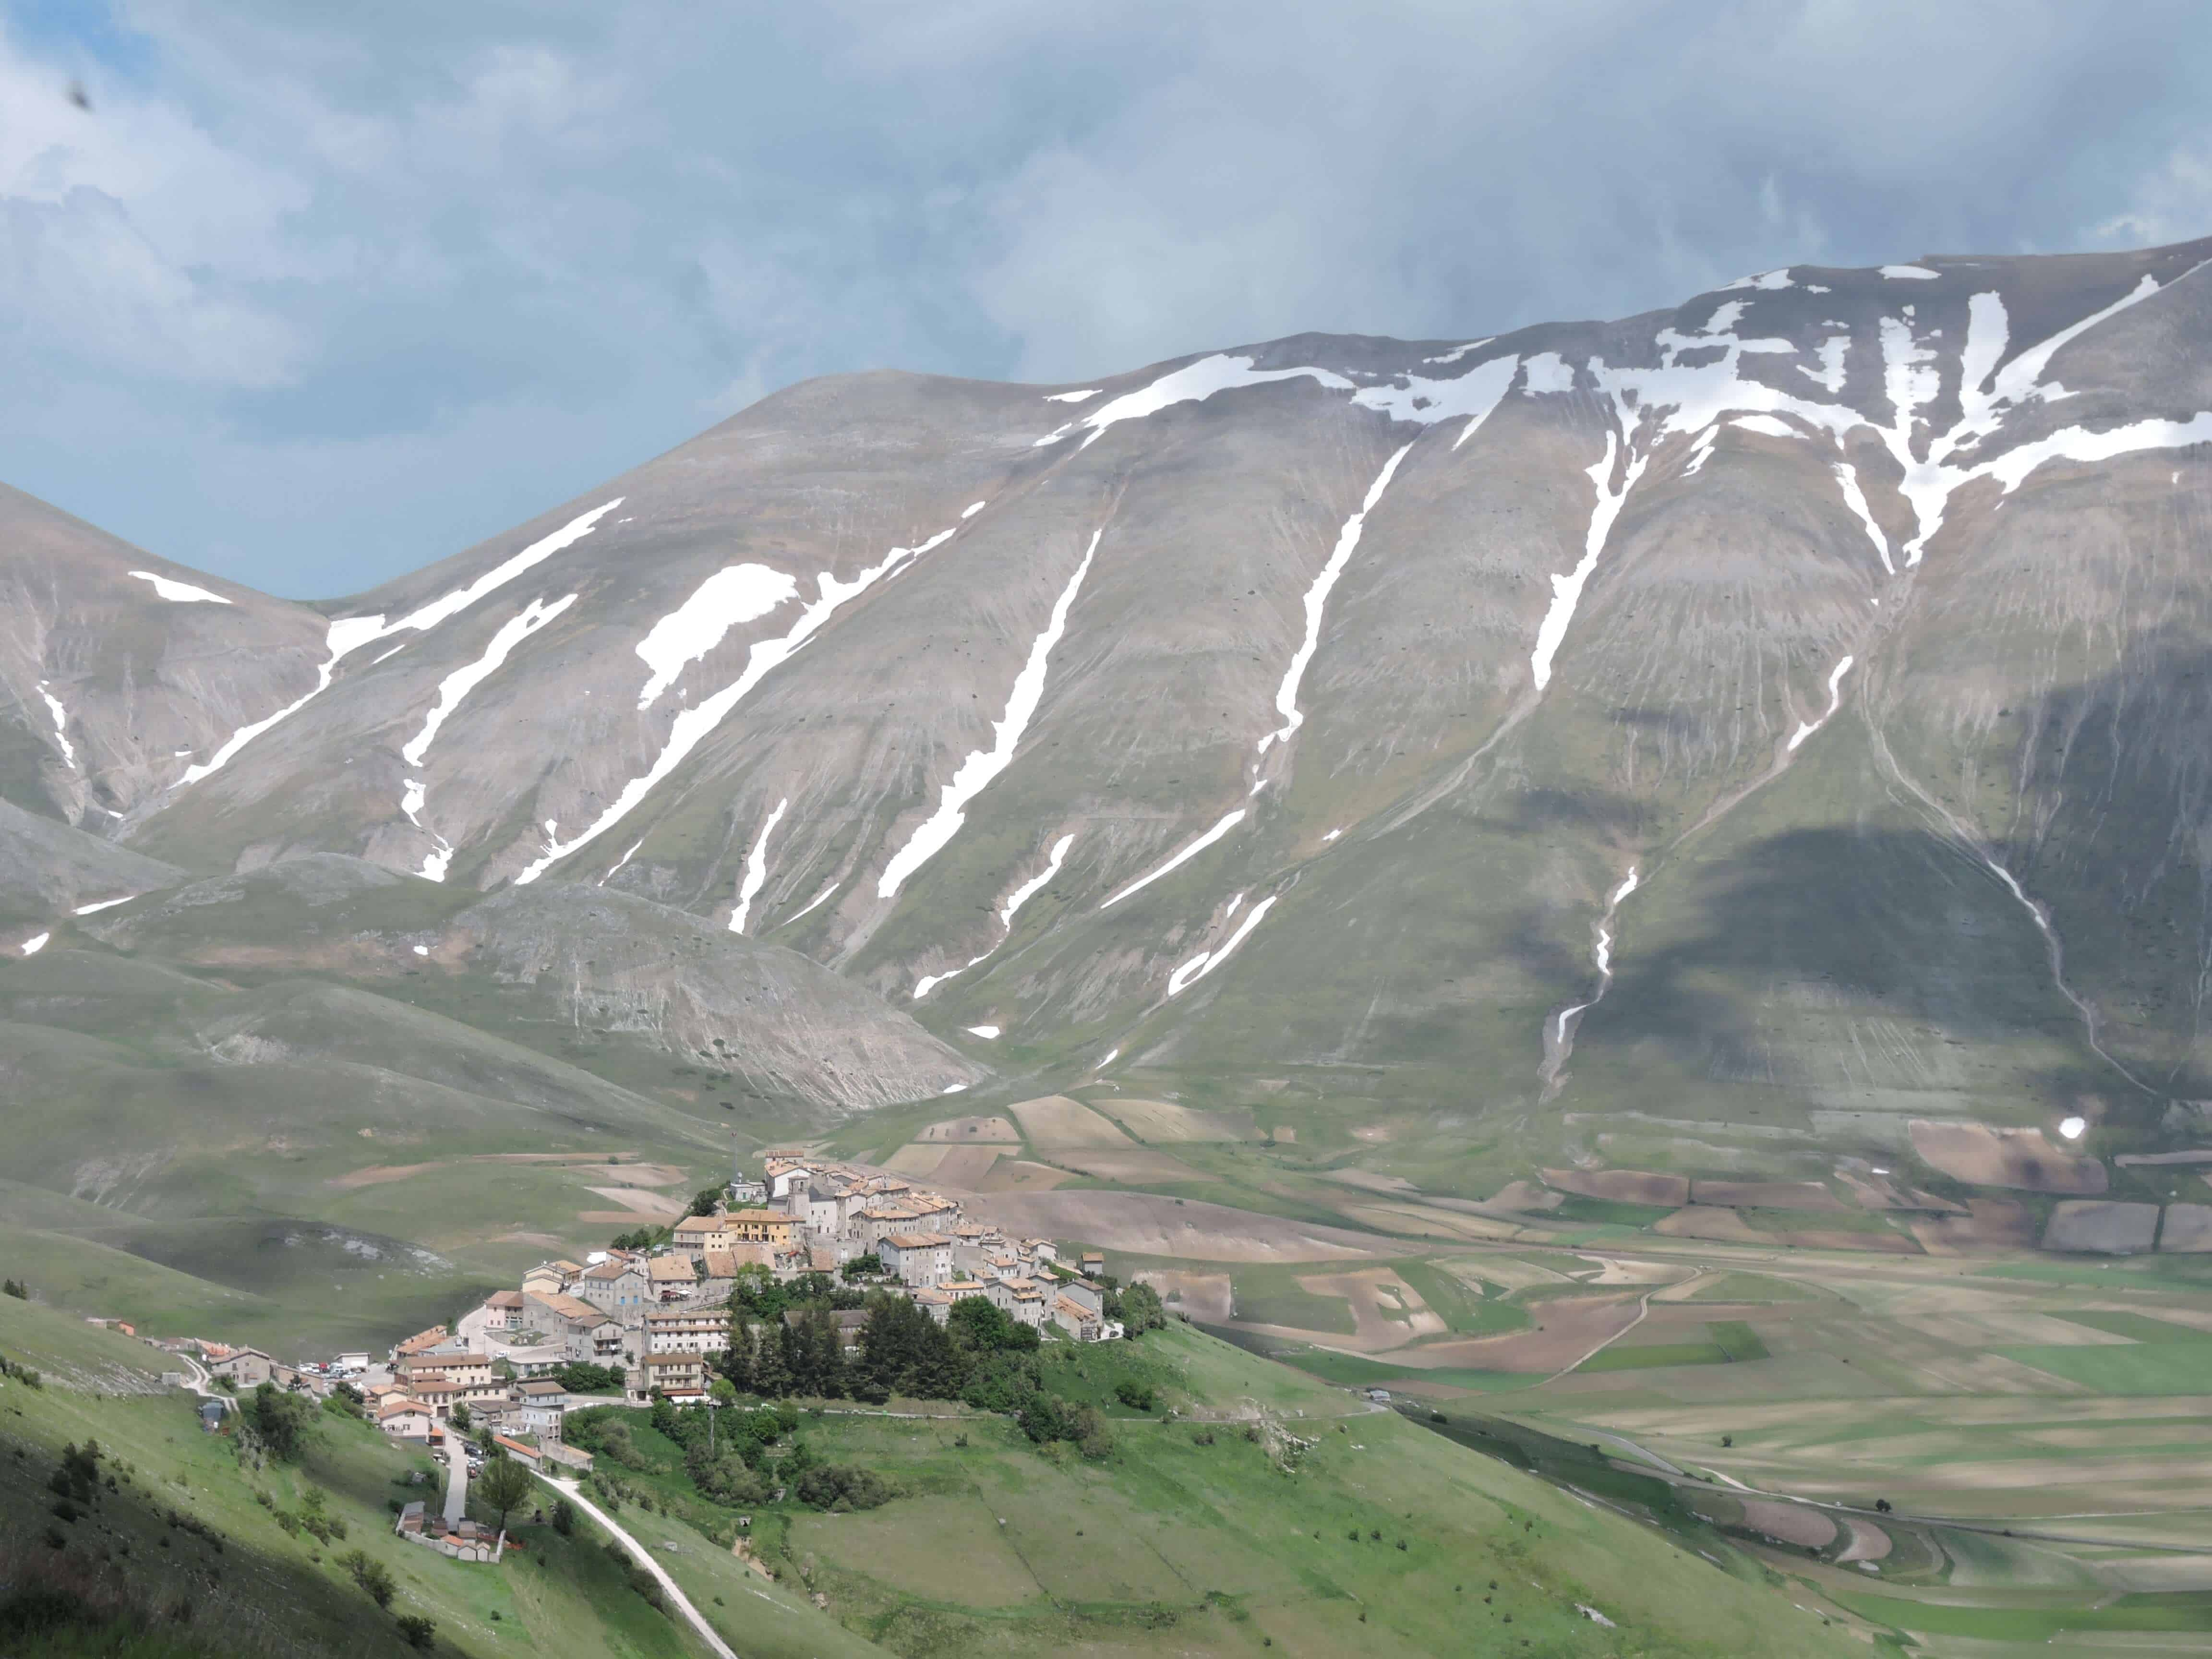 What is Umbria famous for? The Sibillini mountains and Castellucio